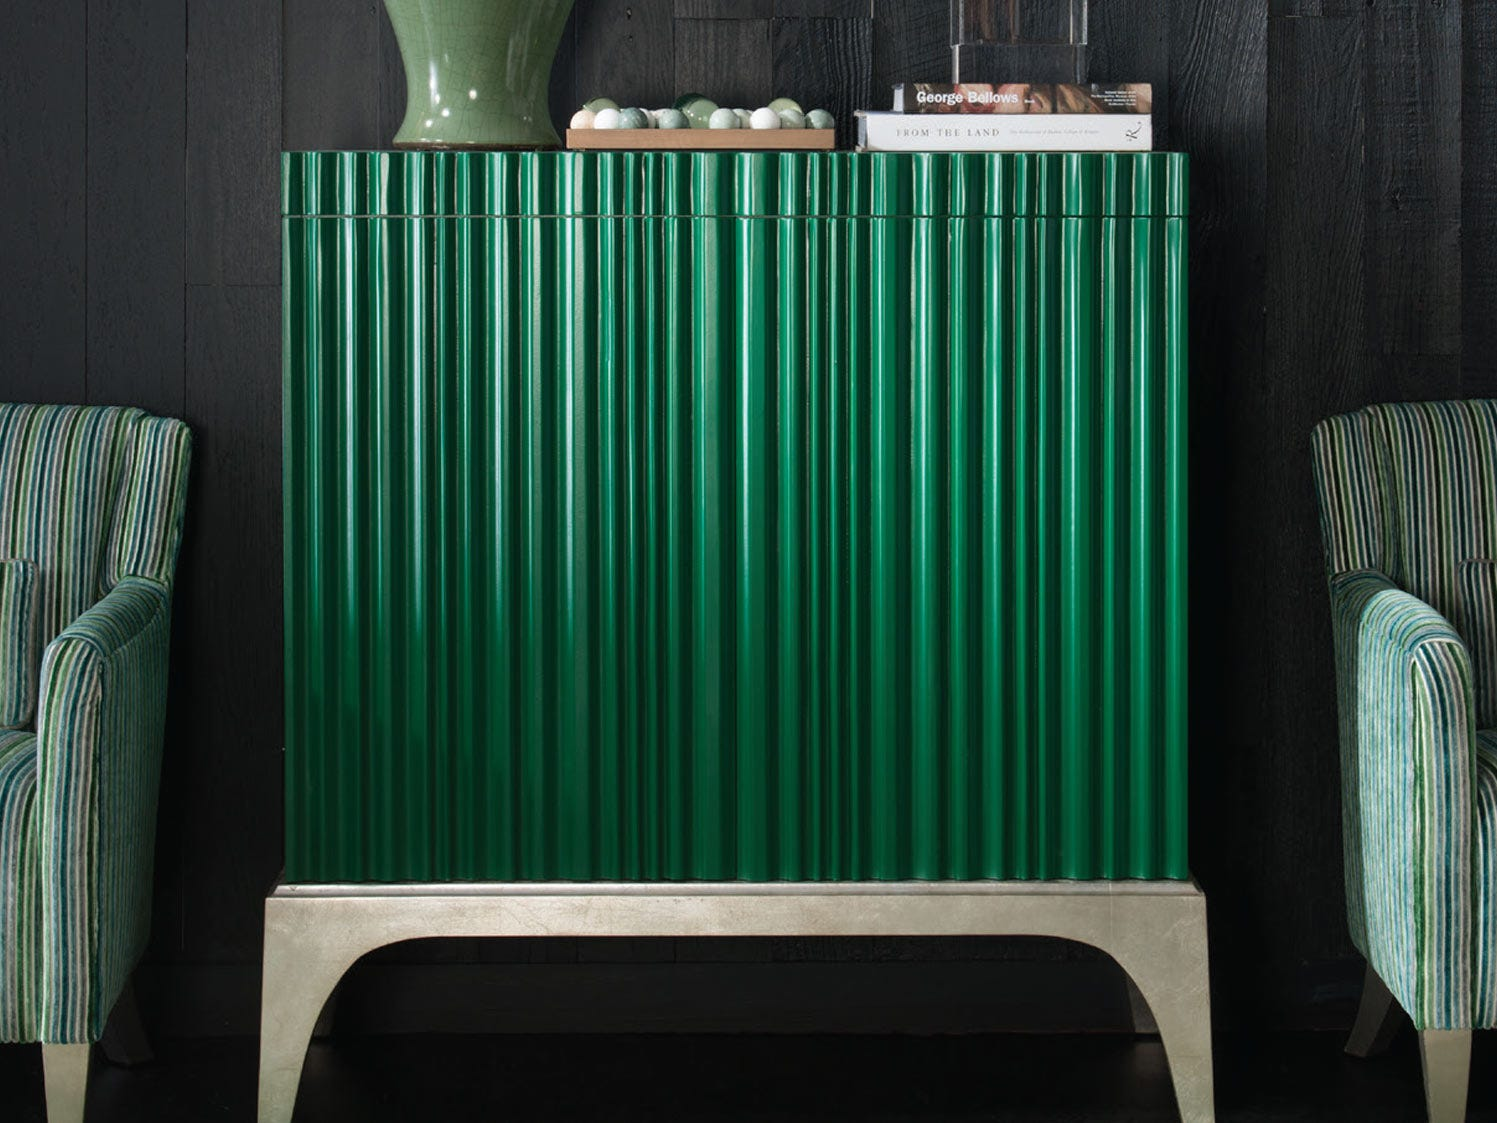 Dazzling emerald green on a piano-ribbed front distinguish the statement Margot Chest from Bruce Andrews. It rests on a silver leaf covered solid maple base, with legs contoured in shape. With beautiful proportions, the 40 3/4-inch-wide piece, handcrafted in America, is 18 3/4 inches deep and stands up from its 12-inch leg an additional 44 inches.